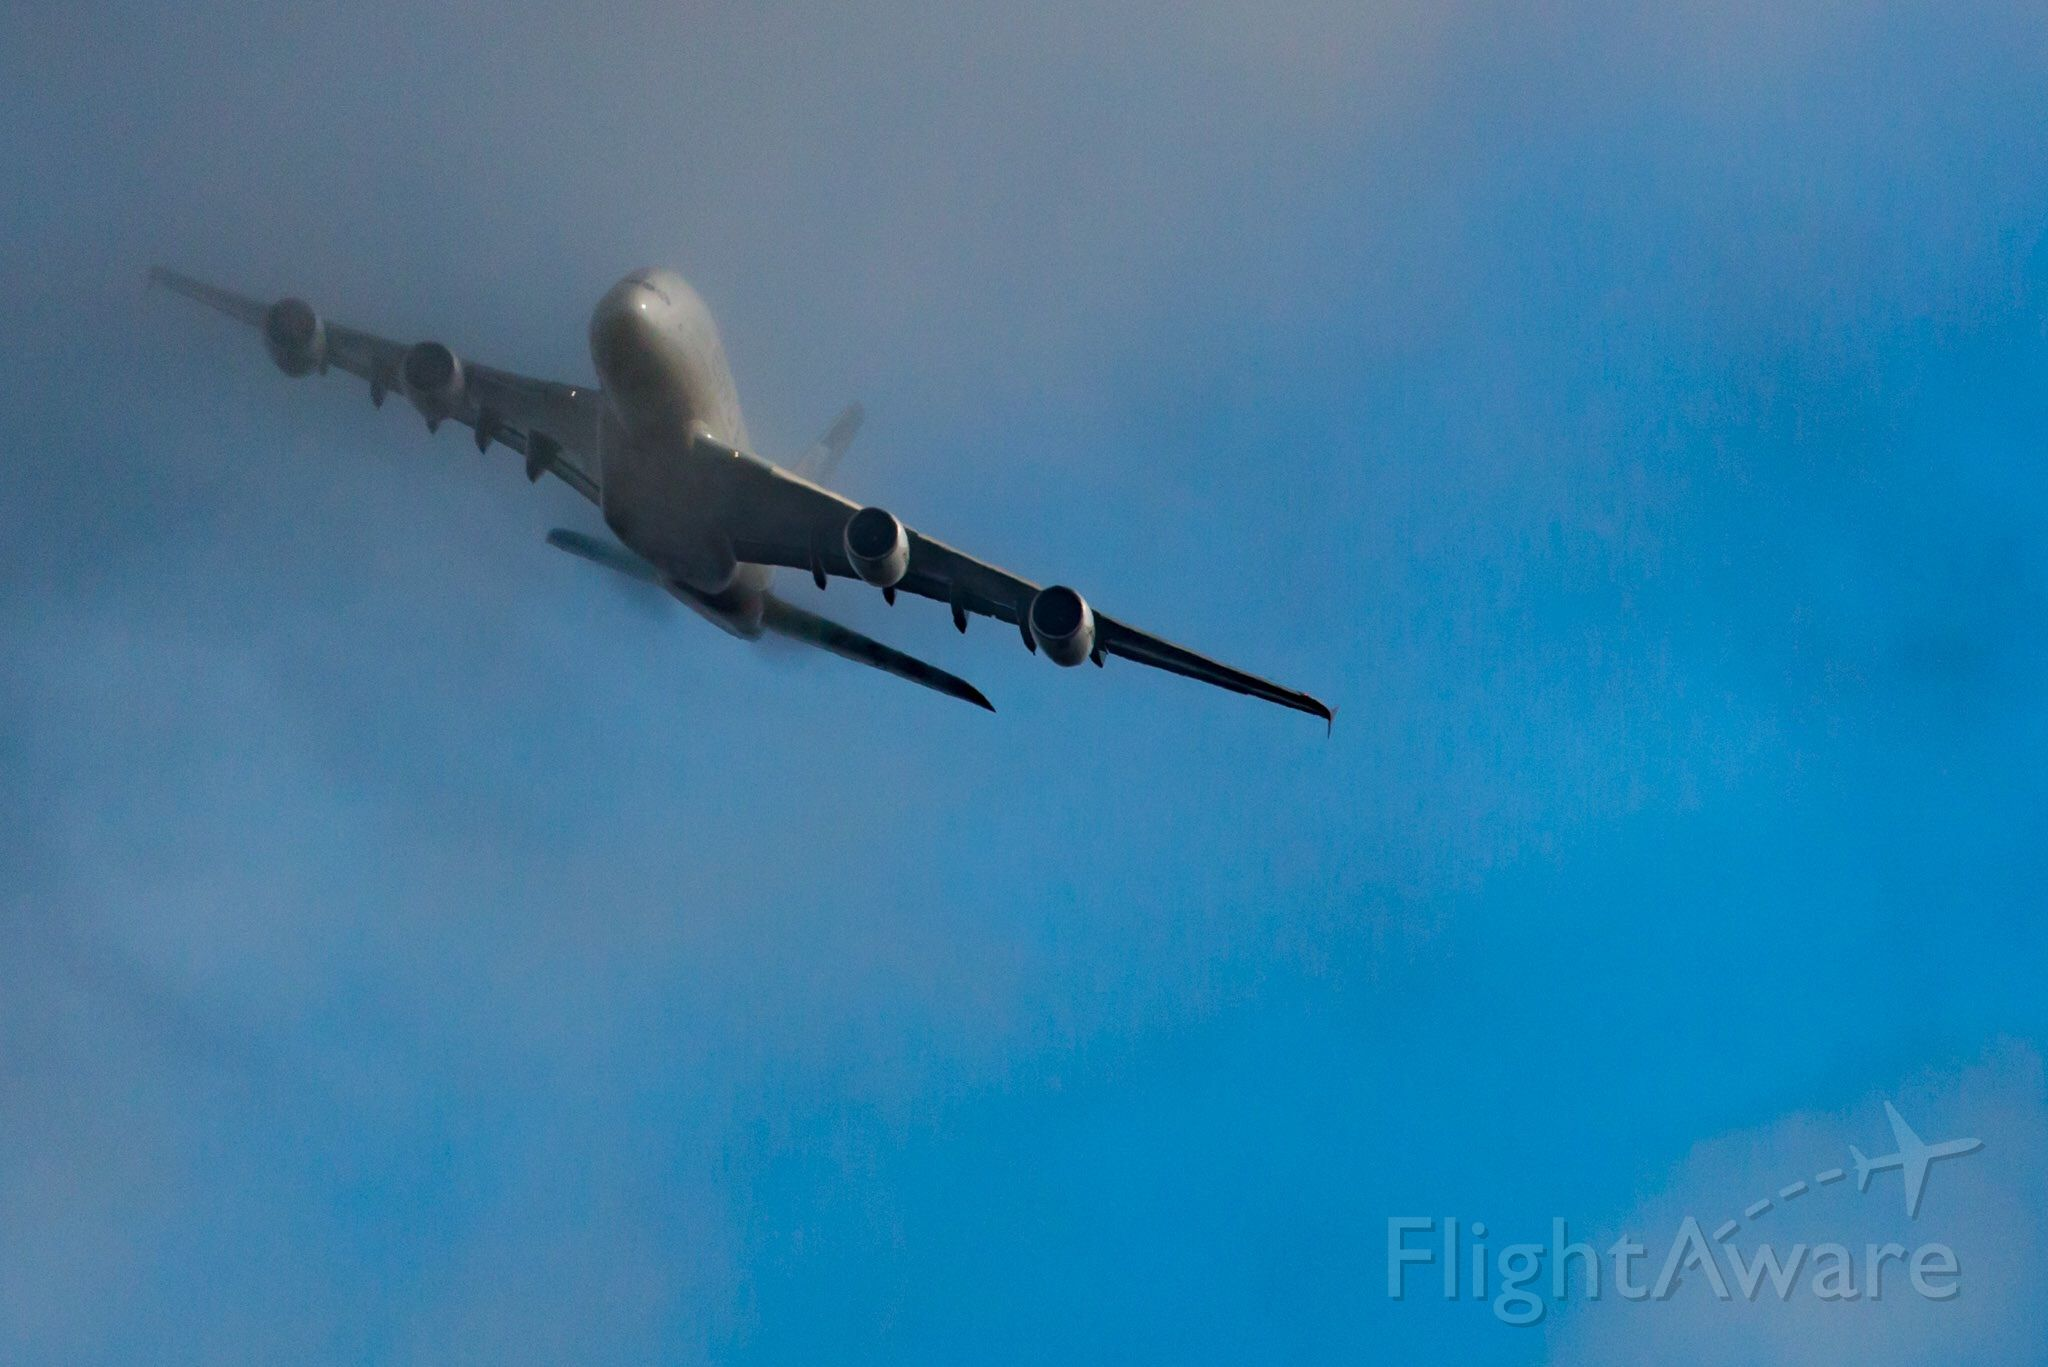 Airbus A380-800 (A6-APB) - Coming through low cloud cover, Turning to align to JFK 22R, over Long Island, new A380 service